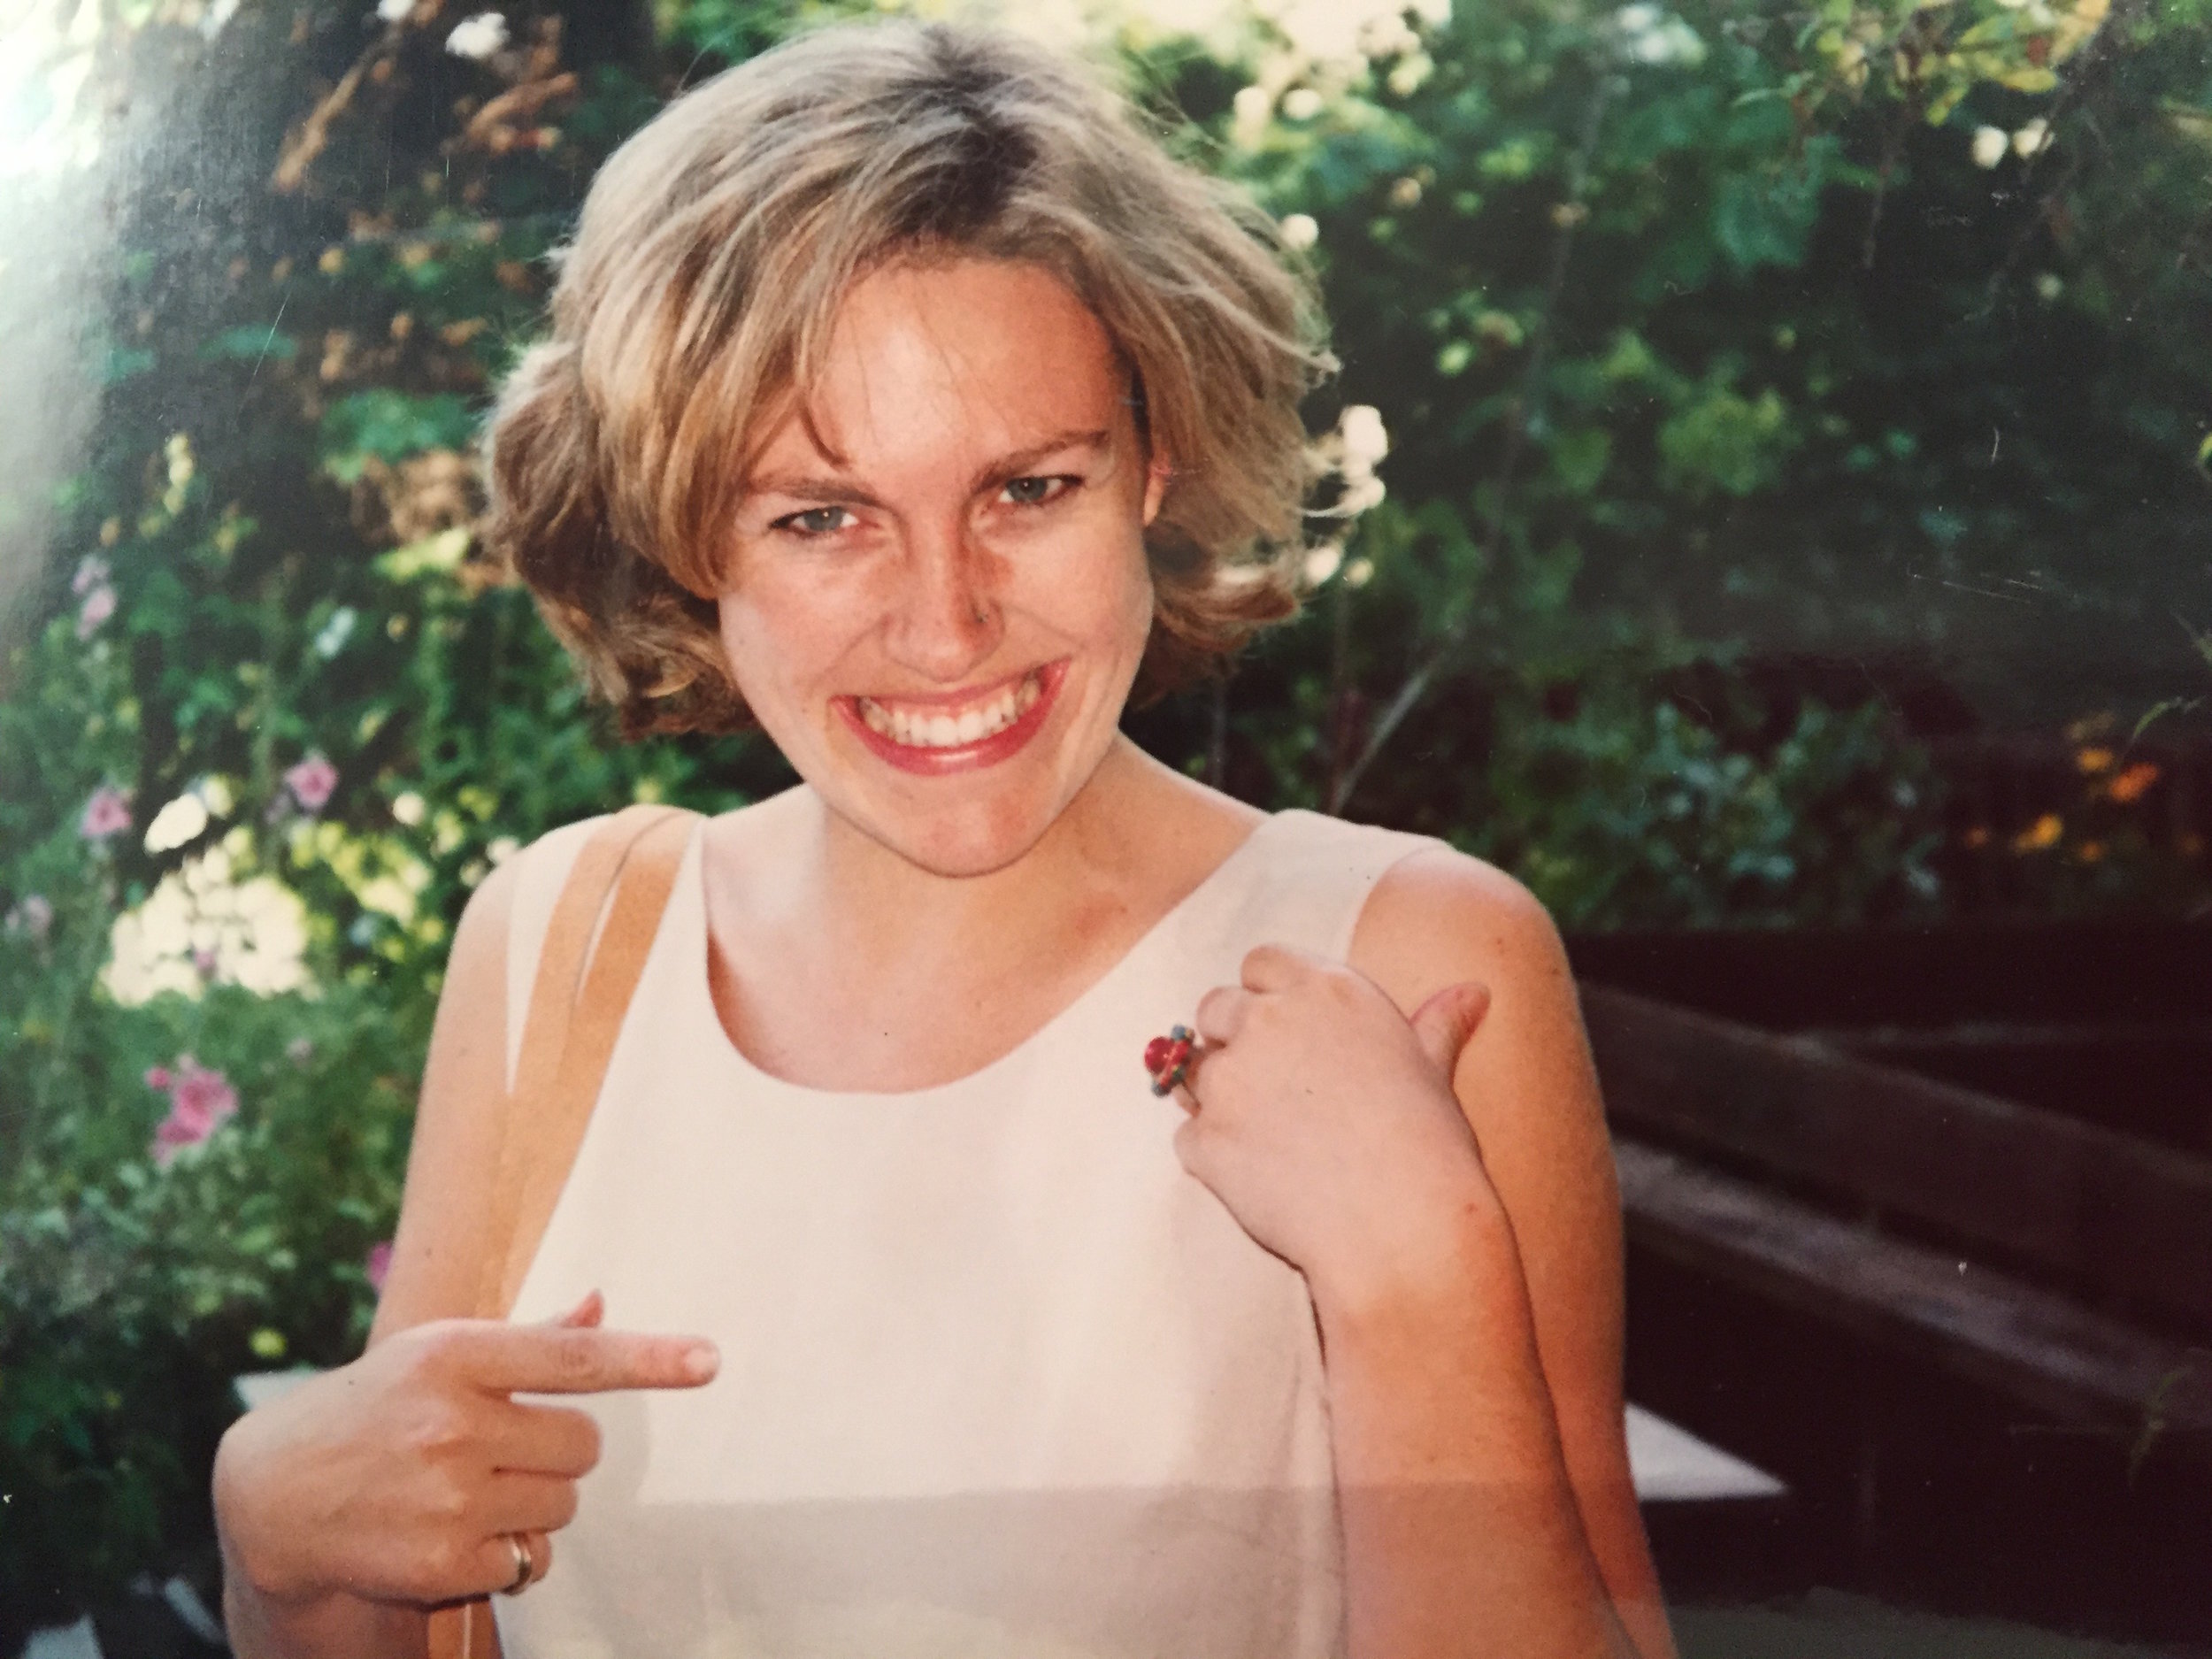 This was taken soon after dad proposed to mum with a temporary engagement ring.Mum was just 23.